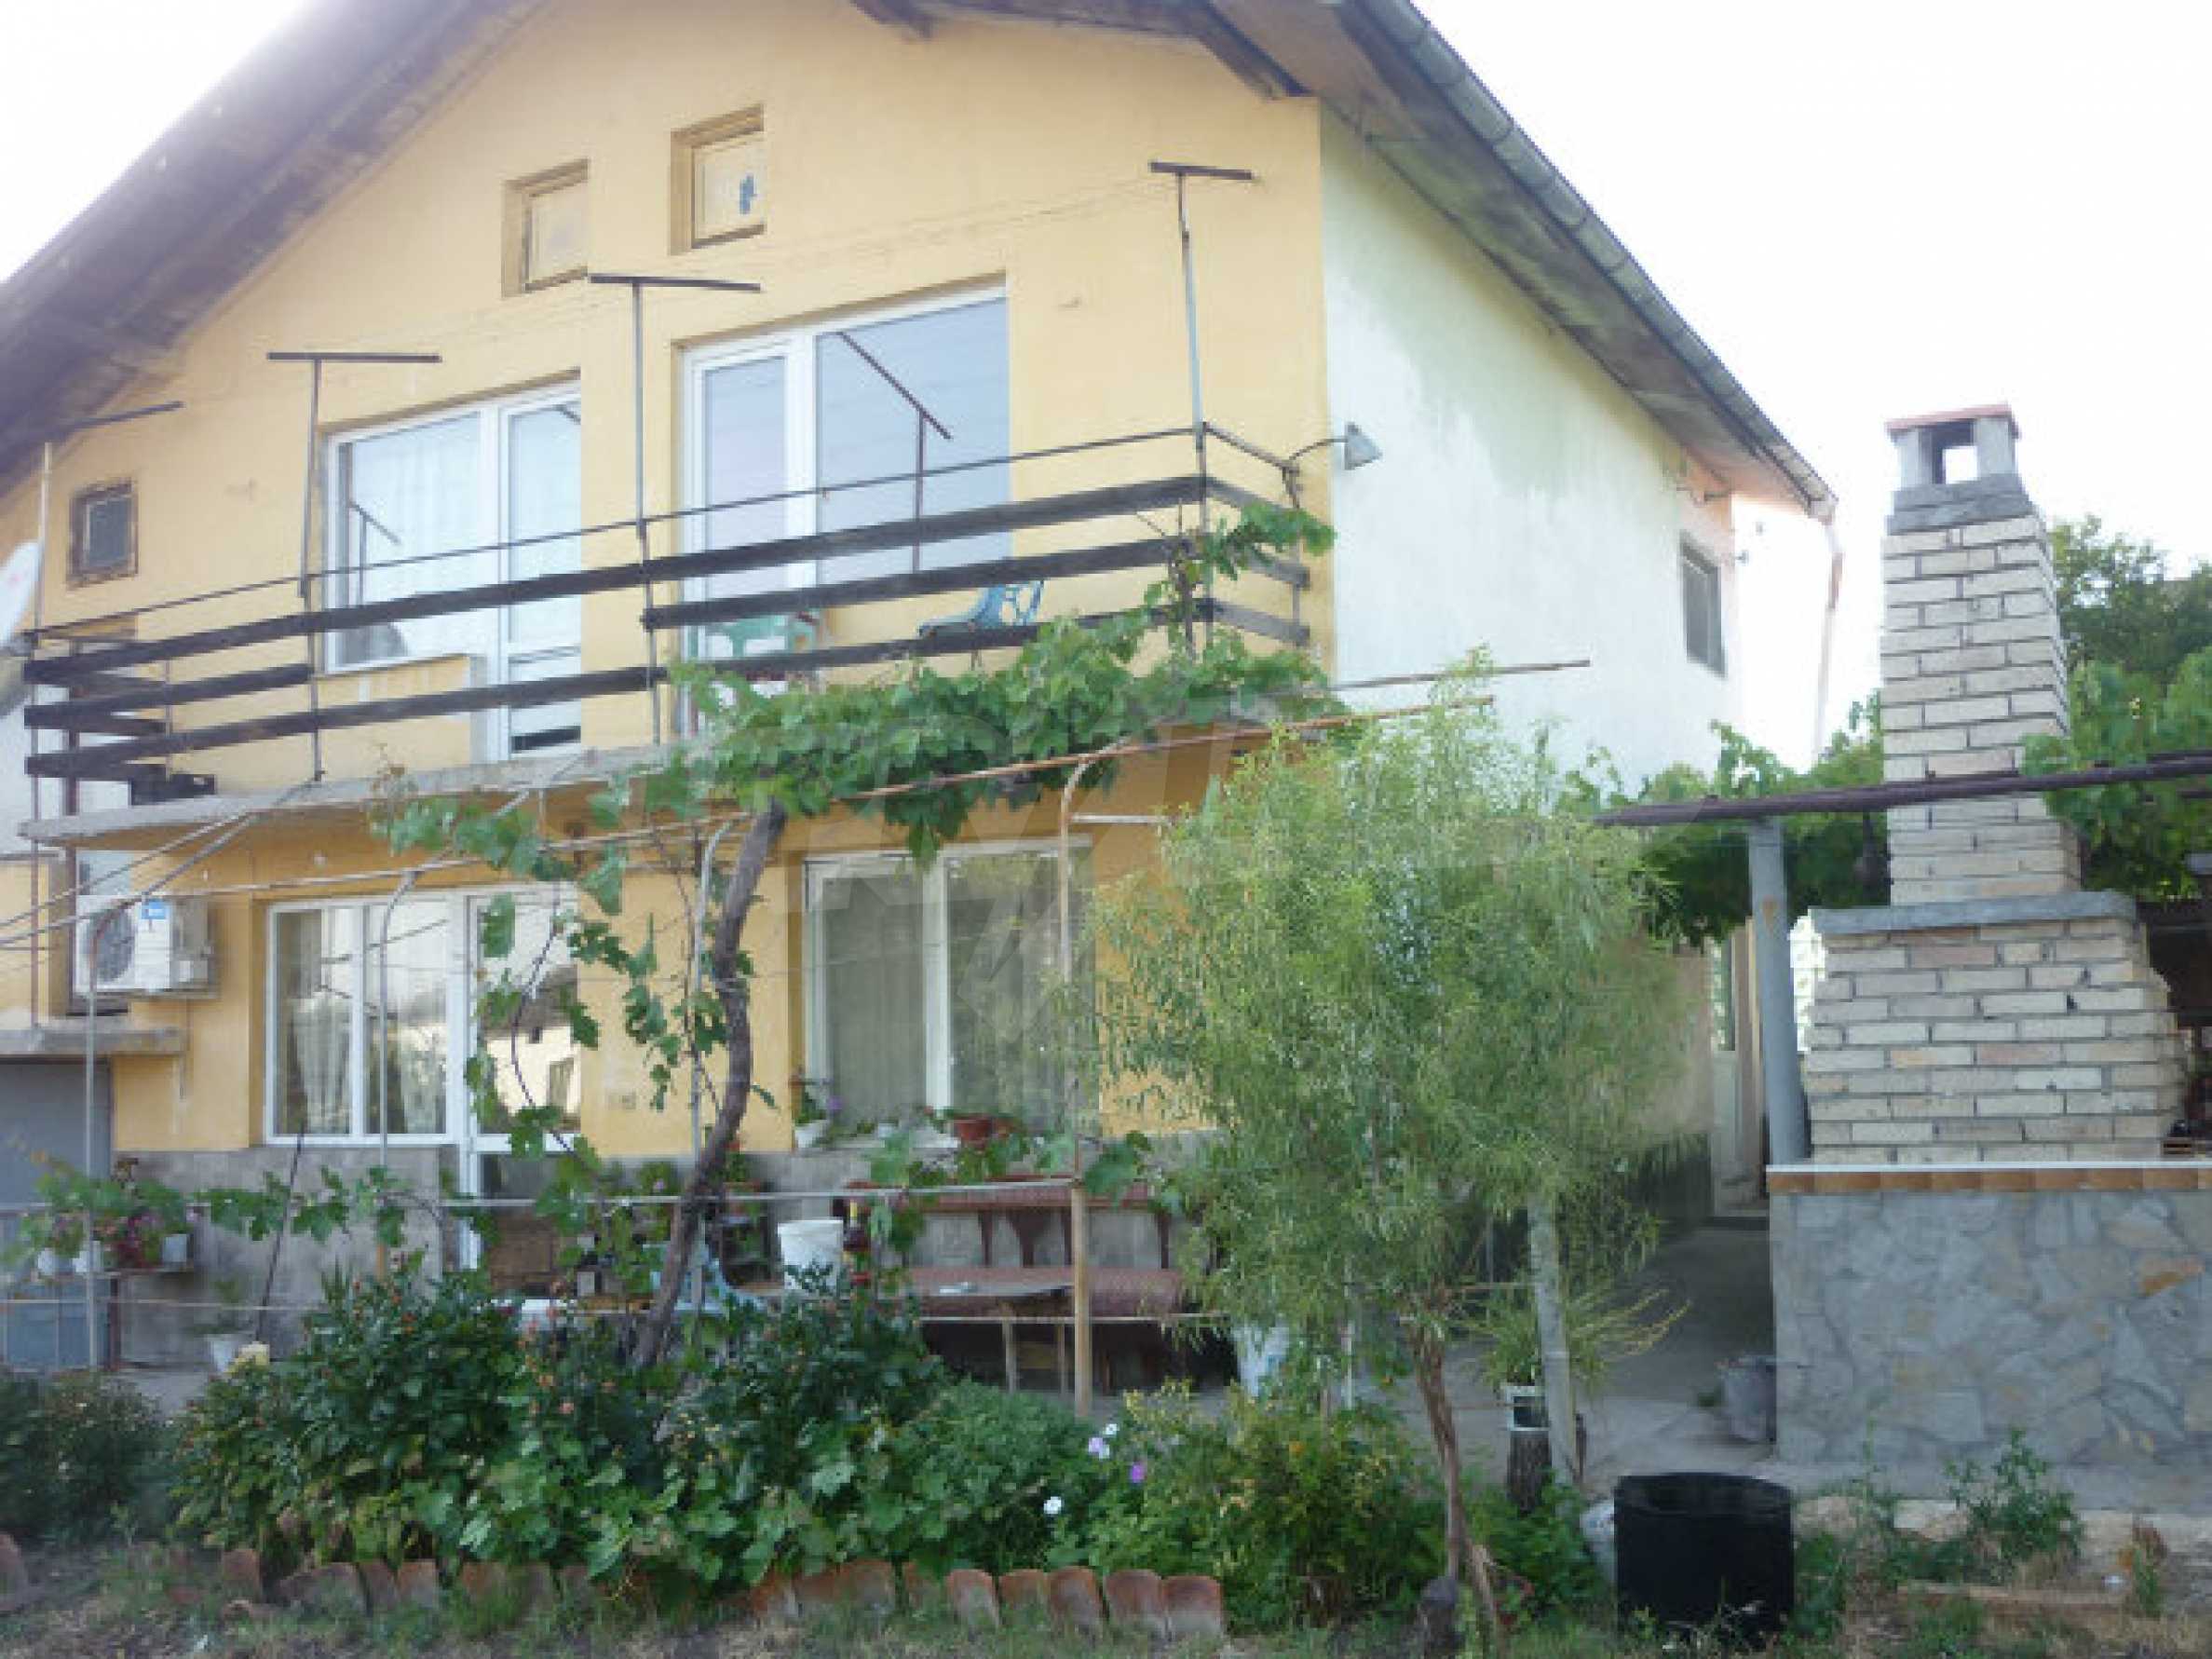 Renovated house in small village on the Maritsa river, near mineral springs 1